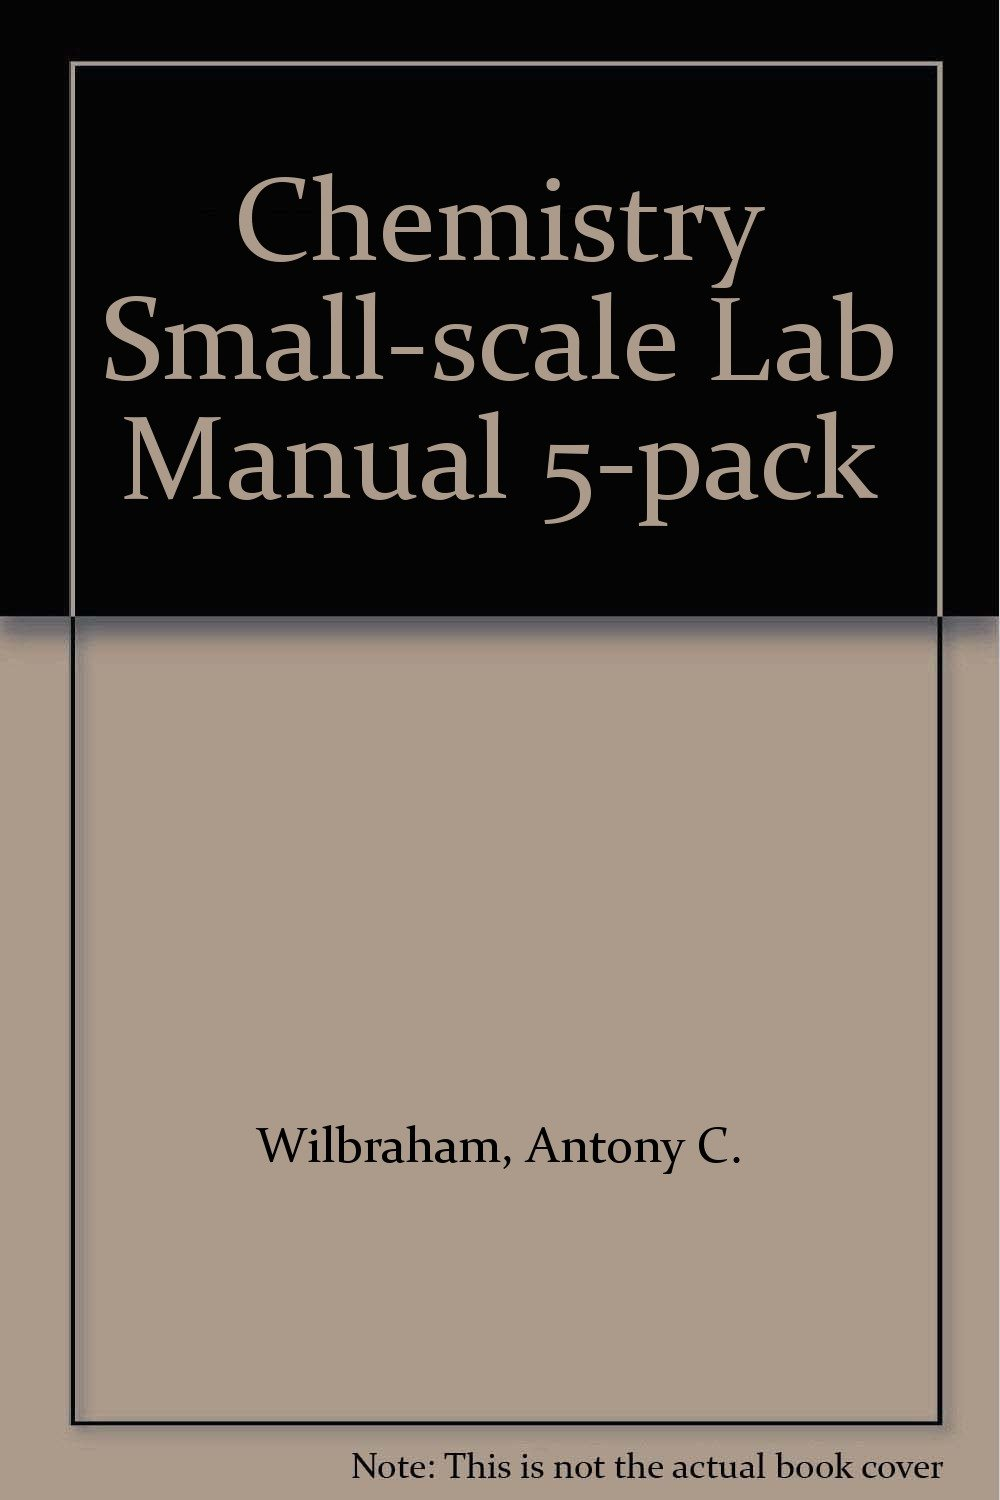 Amazon.com: Chemistry Small-scale Lab Manual 5-pack (9780131255937): Antony  C. Wilbraham, Dennis D. Staley, Michael S. Matta, Edward L. Waterman: Books